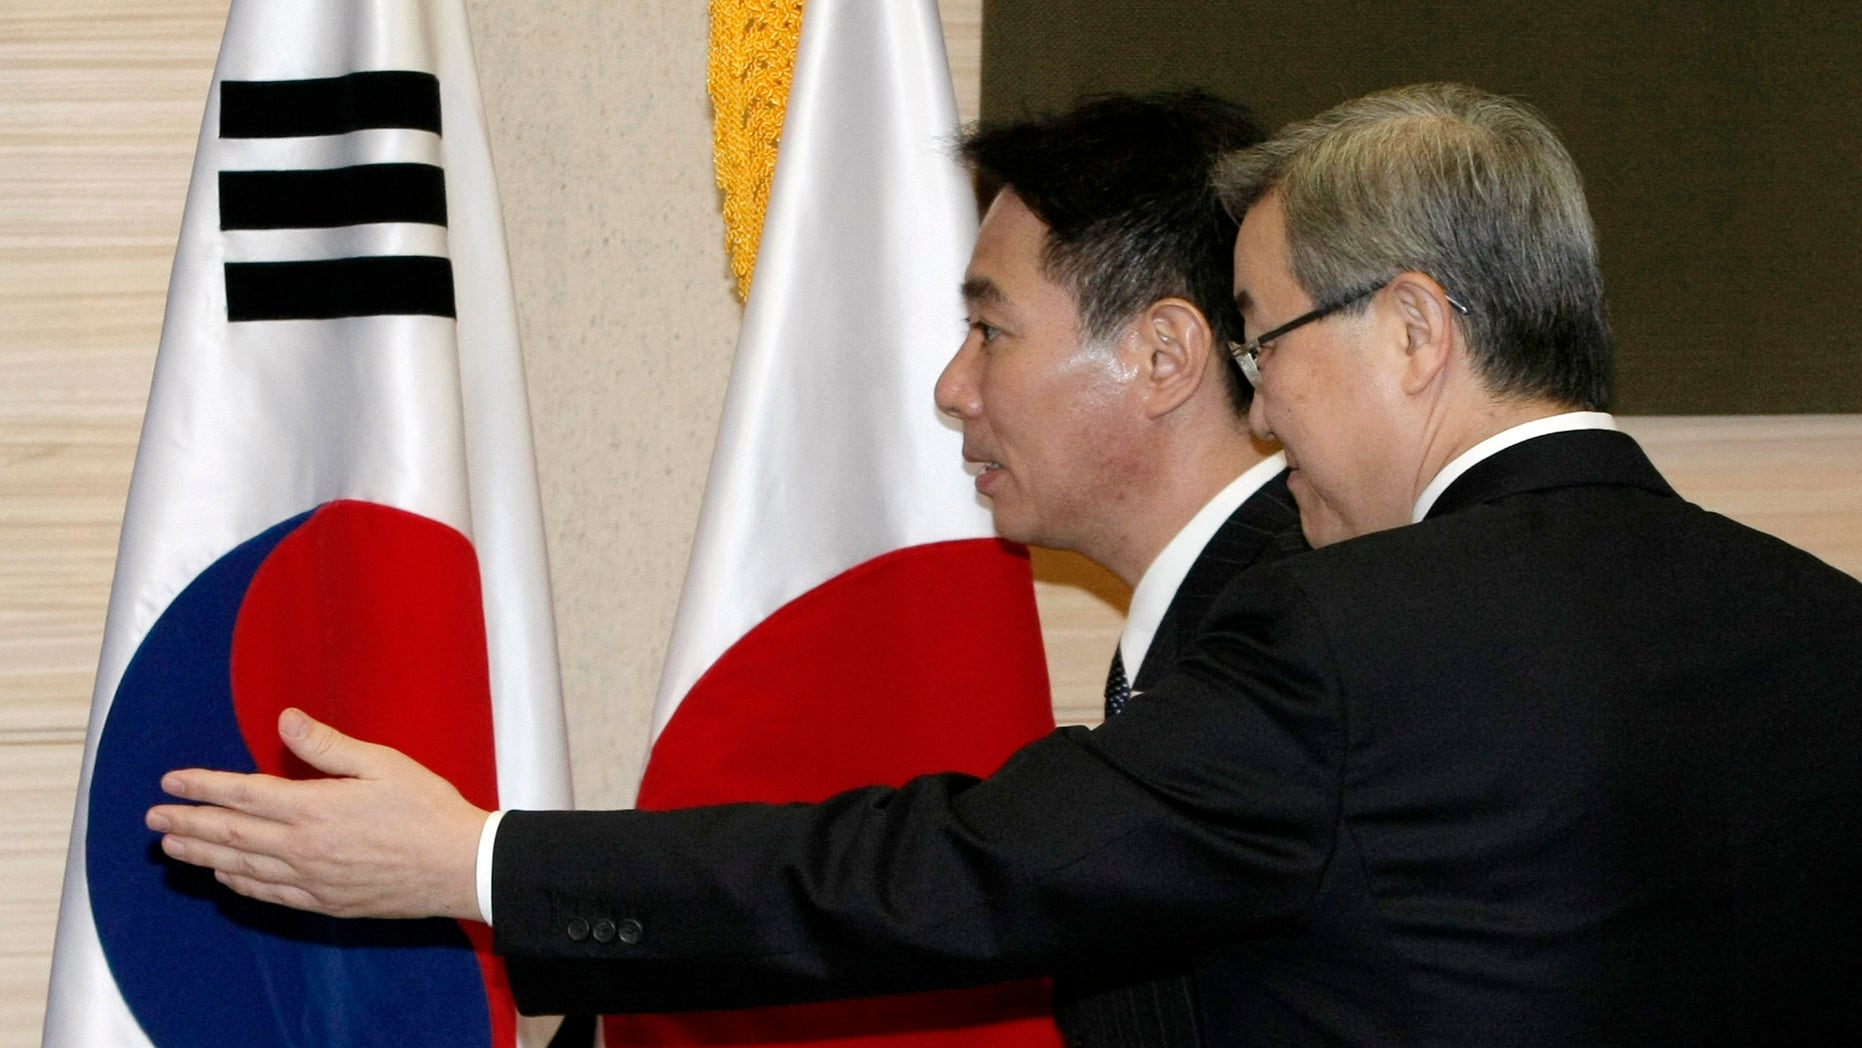 Japanese Foreign Minister Seiji Maehara, back, is escorted by South Korean counterpart Kim Sung-hwan as they arrive to hold their joint press conference at the Ministry of Foreign Affairs and Trade in Seoul, South Korea, Saturday, Jan. 15, 2011. The top diplomats of South Korea and Japan are continuing their hard line on North Korea's push for aid-for-nuclear disarmament talks.